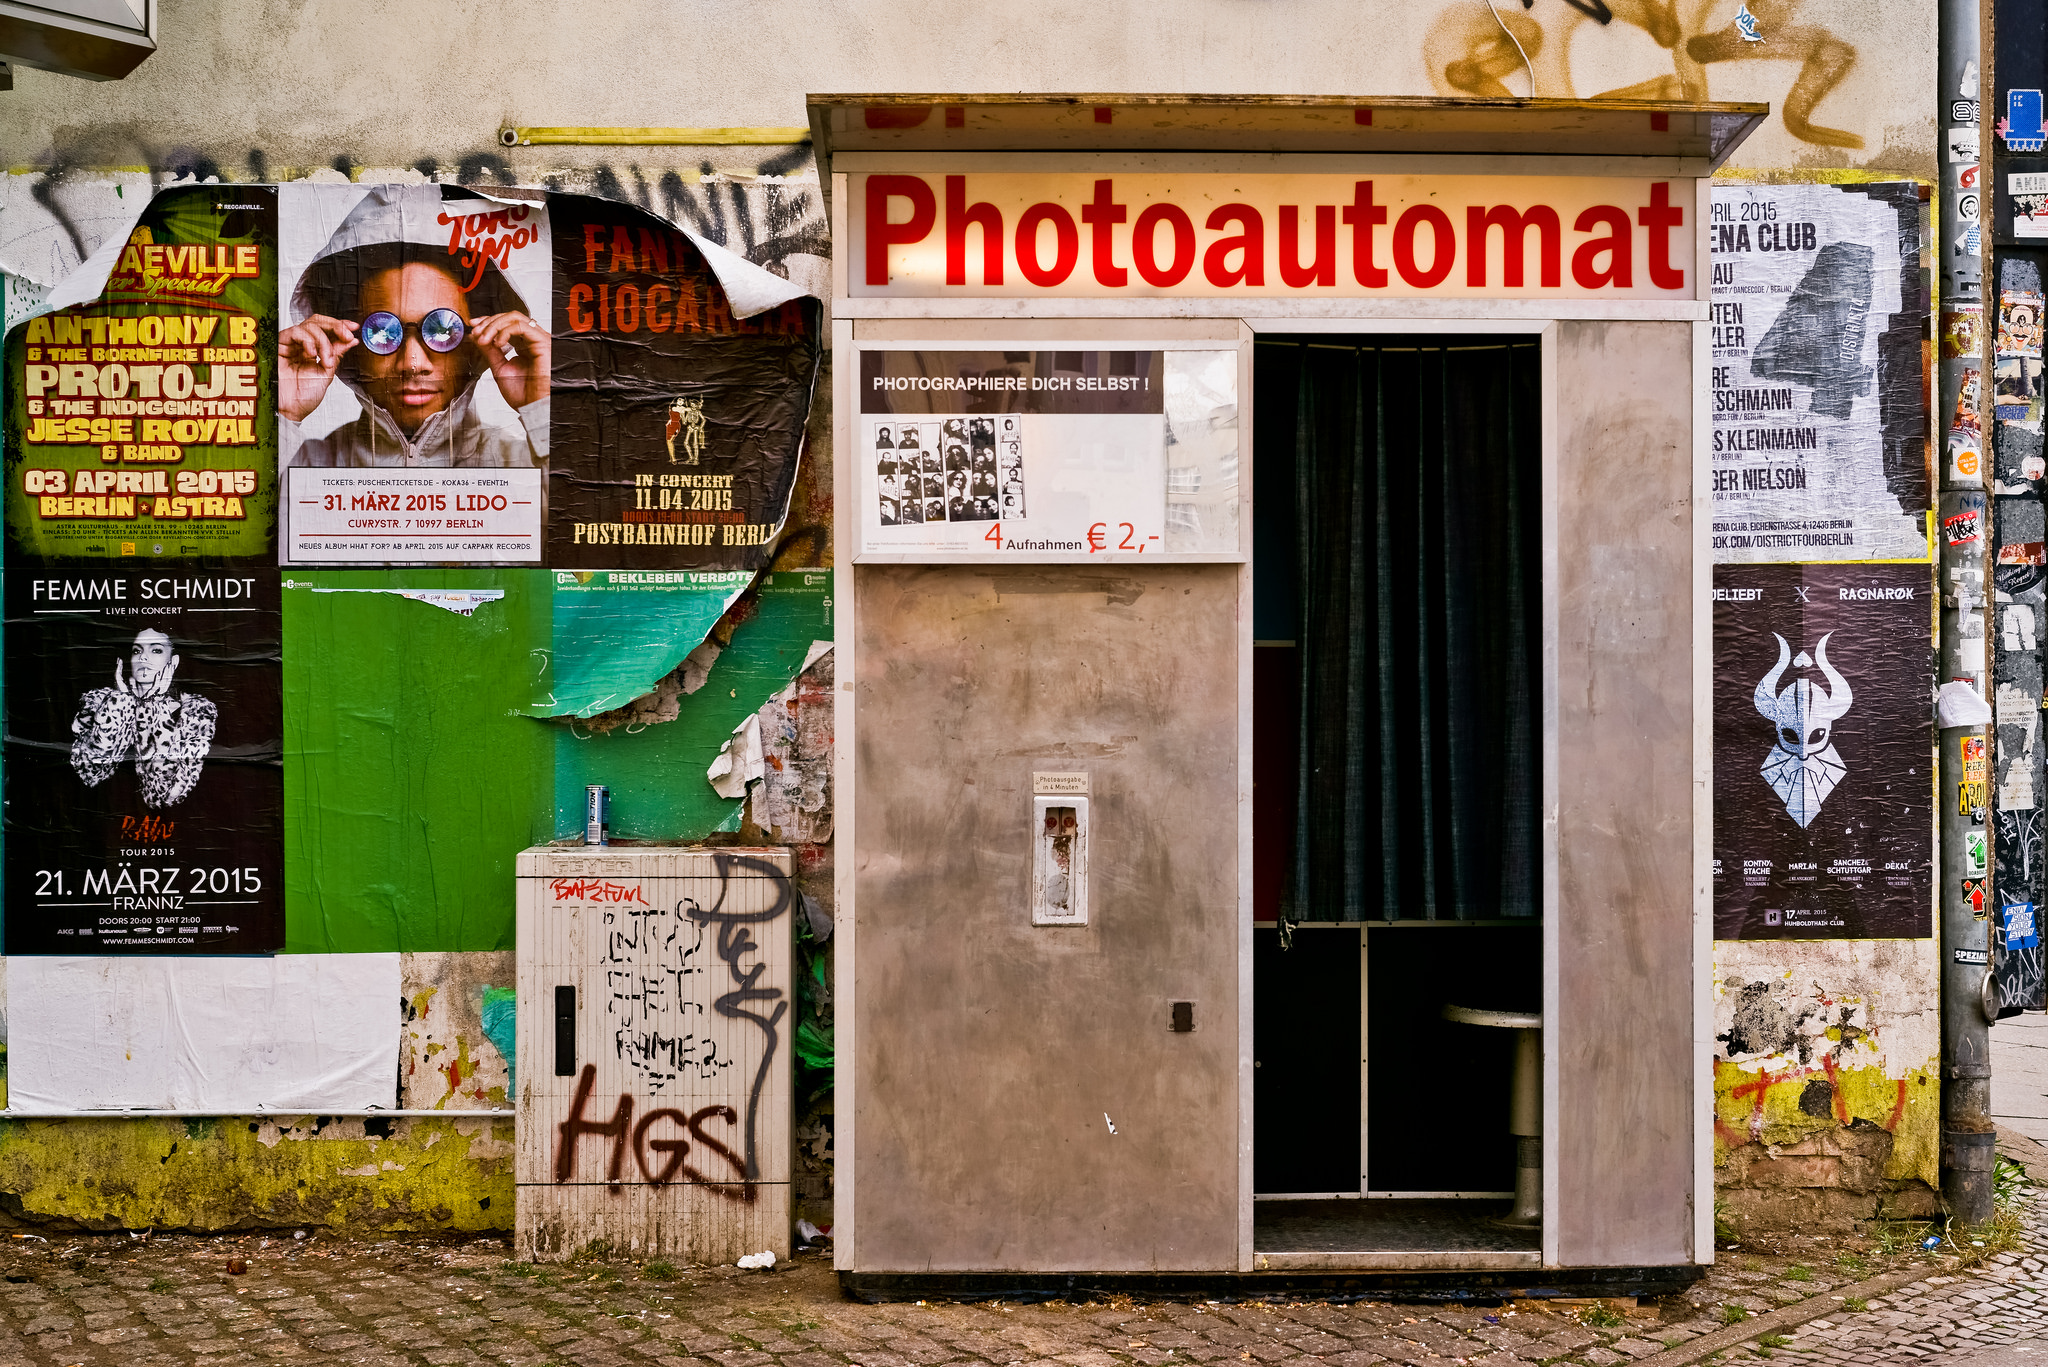 take a photo of yourself Photoautomat | ©martin / Flickr